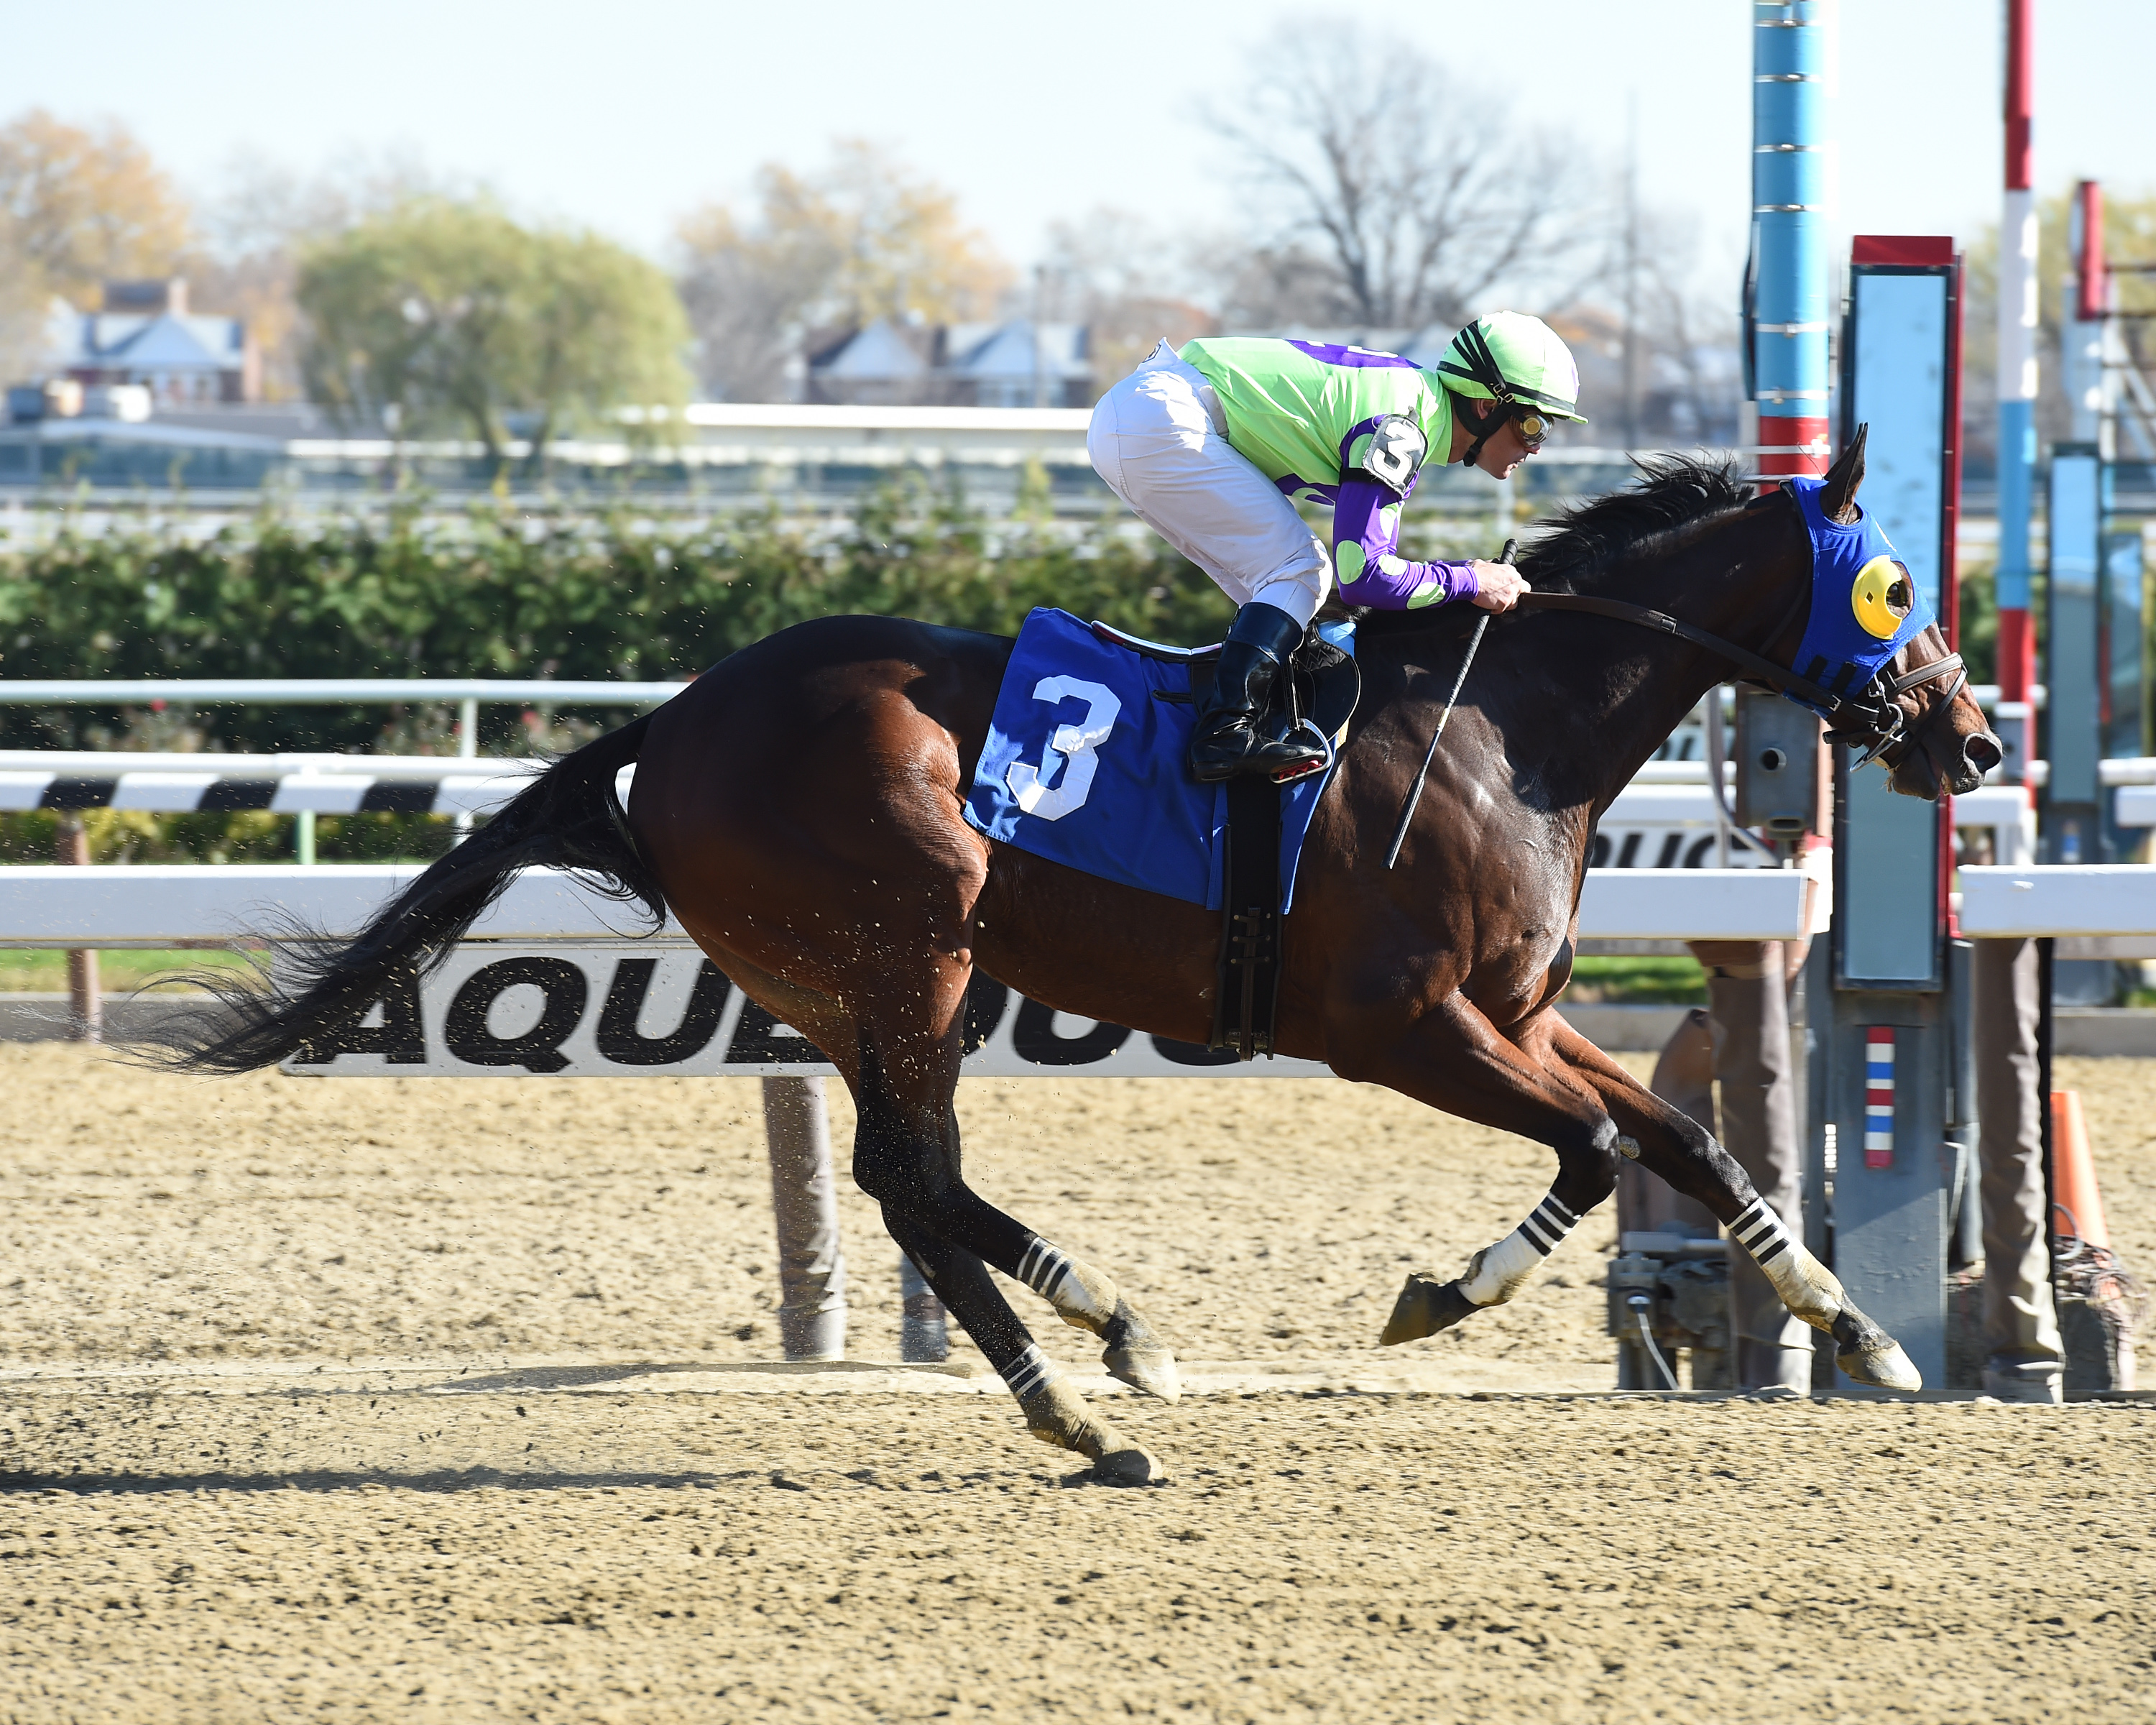 Jockey Javier Castellano directed River Date to victory at Aqueduct November 18th. Photo by Adam Coglianese.